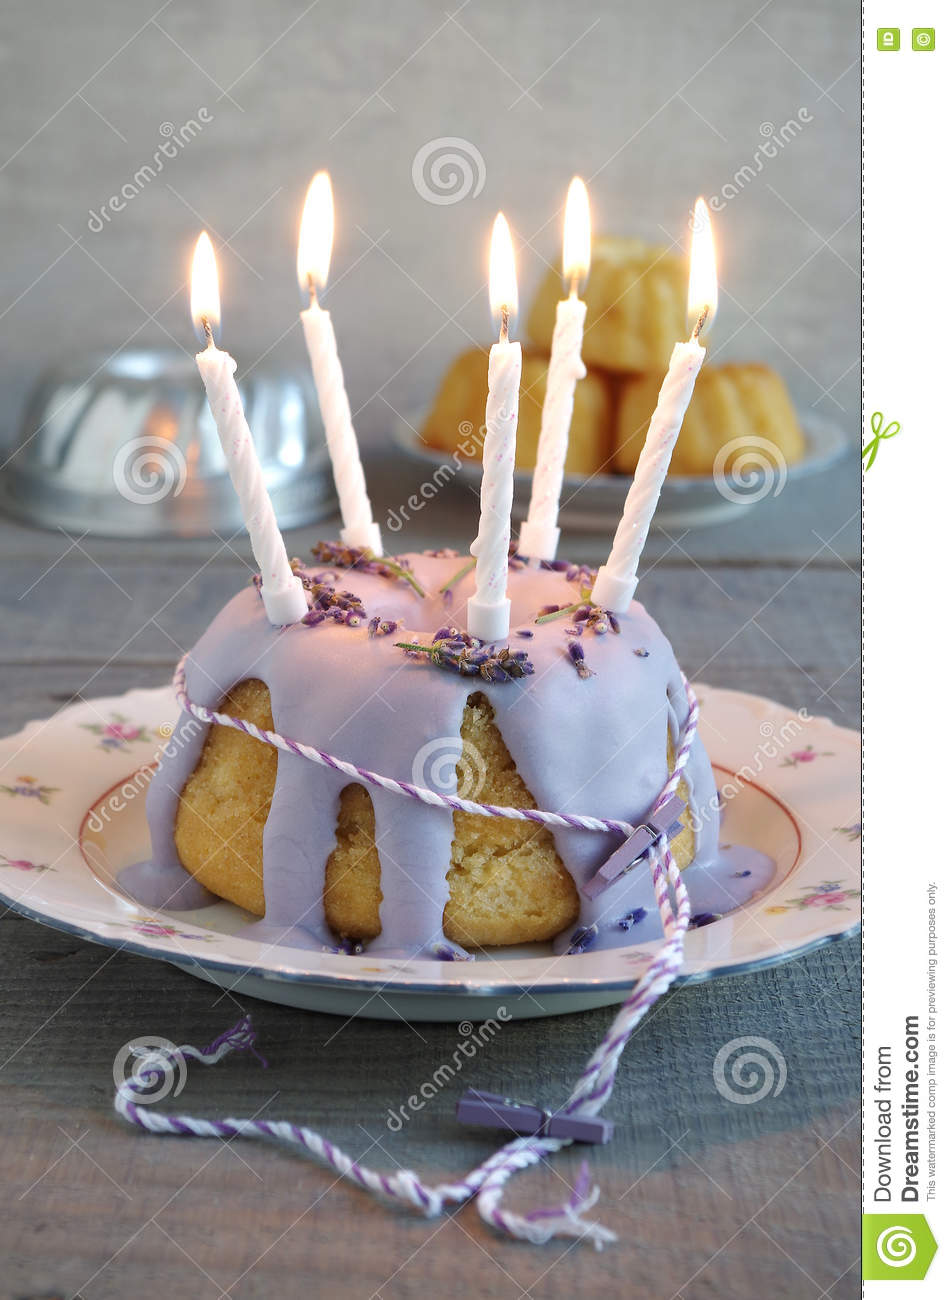 Gugelhupf With Icing And Lavender As Birthday Cake Stock Photo